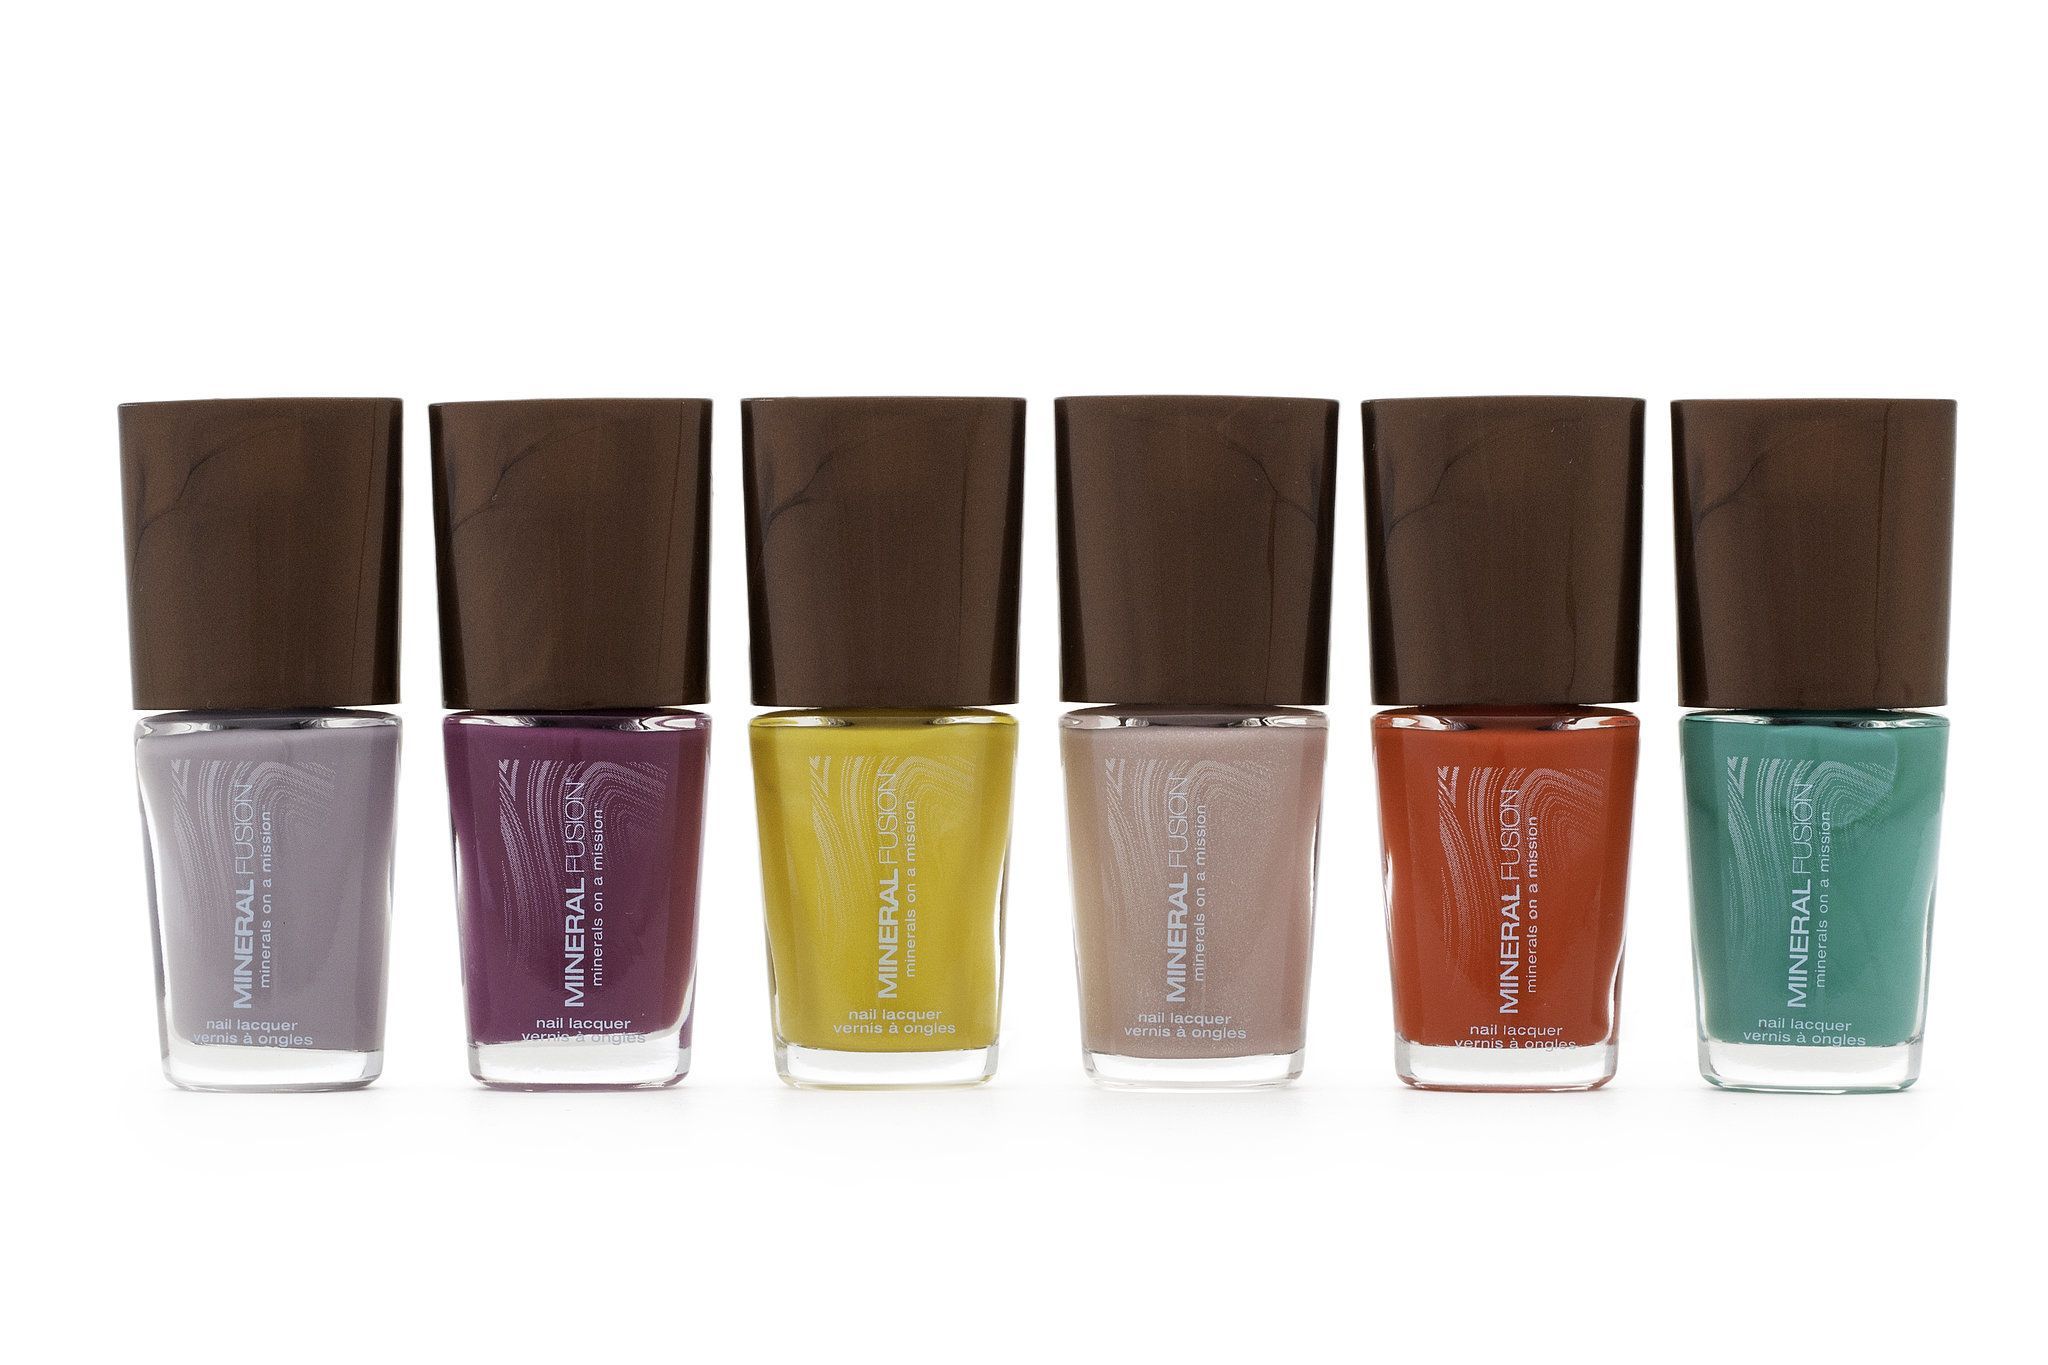 Mineral Fusion  http://mineralfusion.com/index.php/shop/cosmetics/new-colors/new-nail-polish  at whole foods